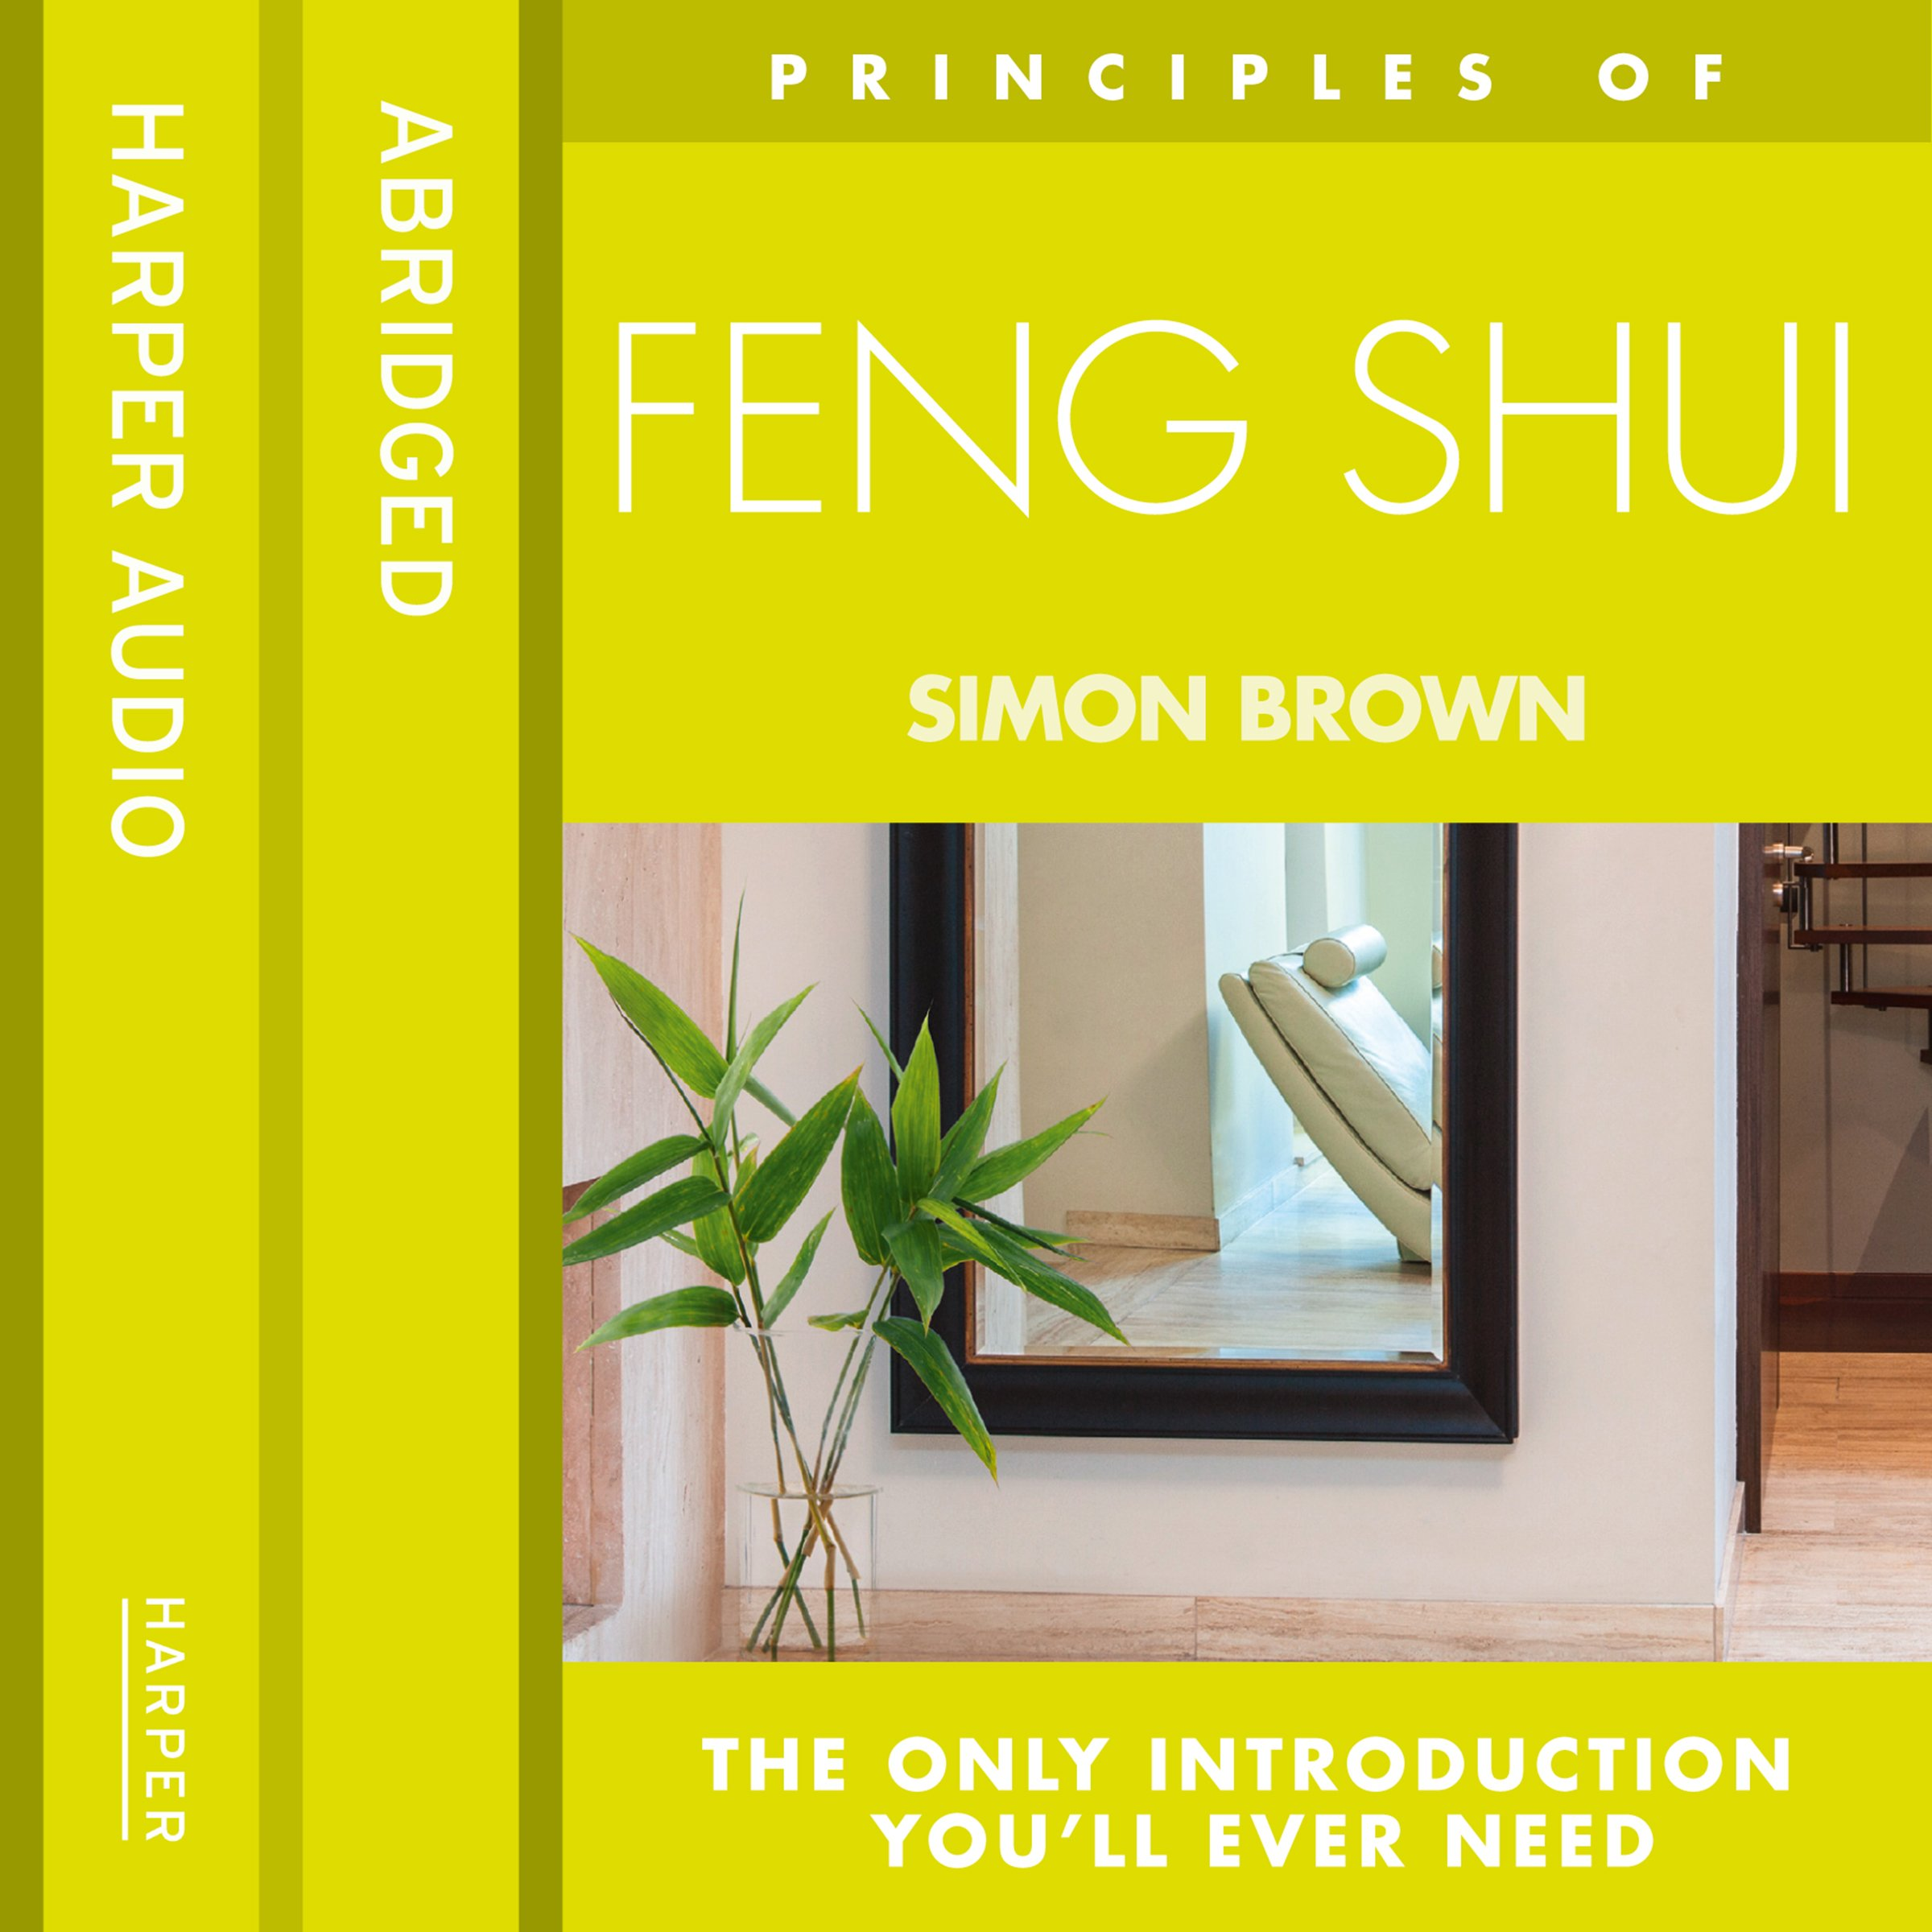 Feng Shui: The only introduction you'll ever need